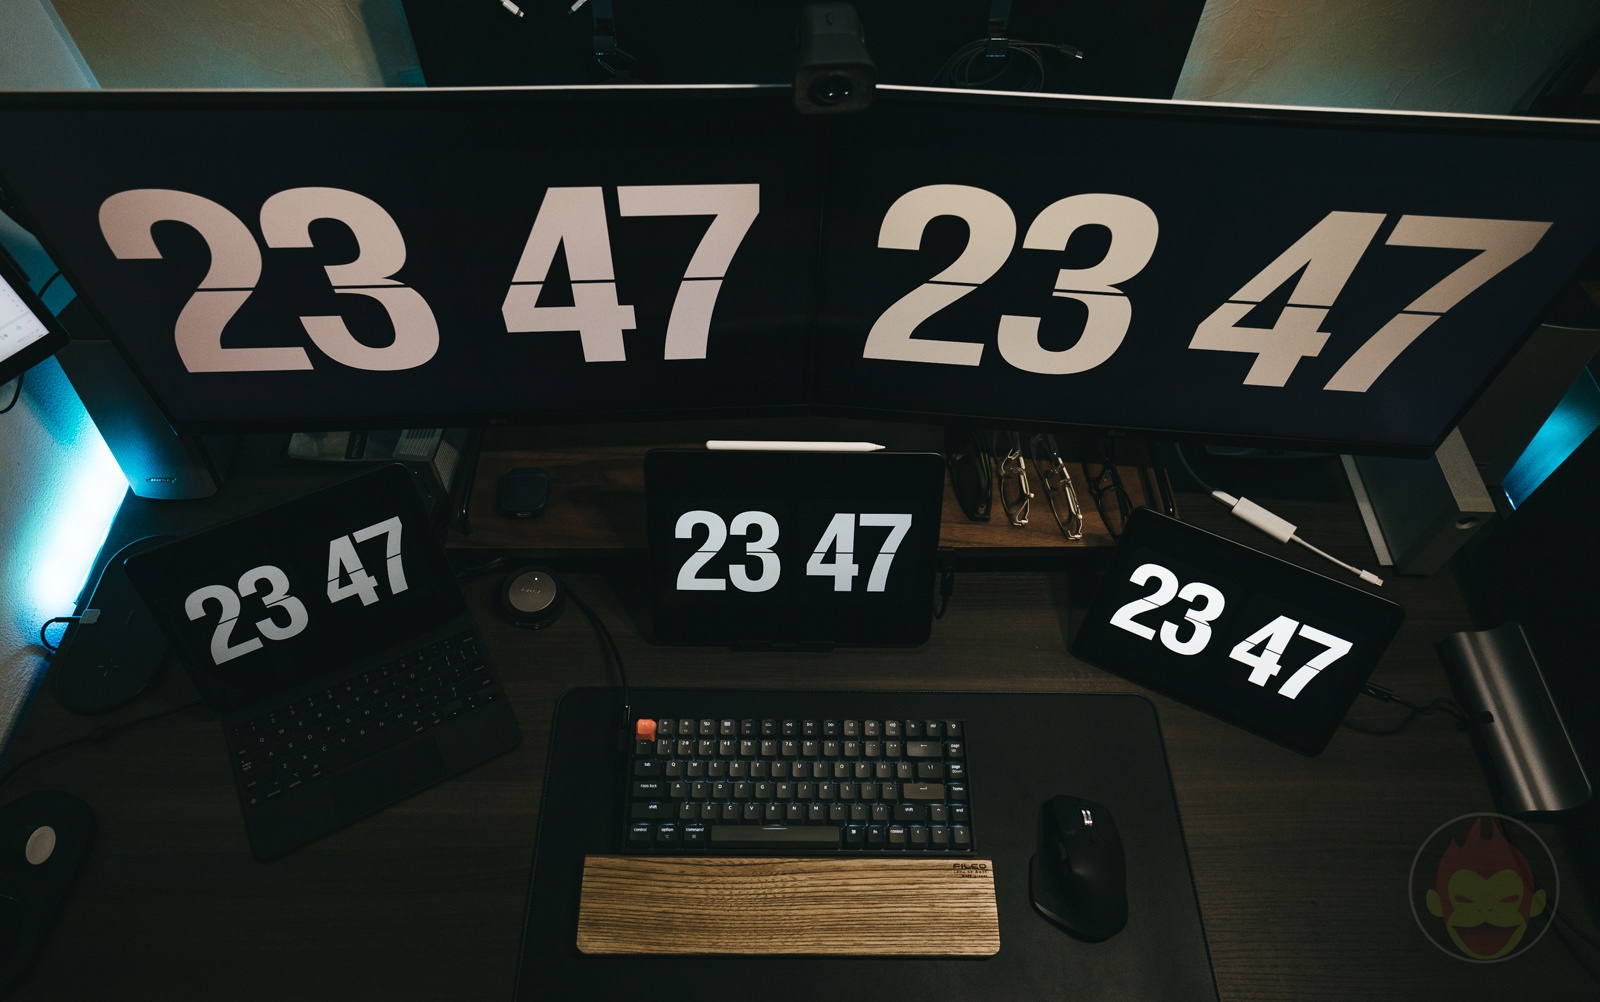 2-4k-displays-3-ipadpros-multimoniter-02.jpg